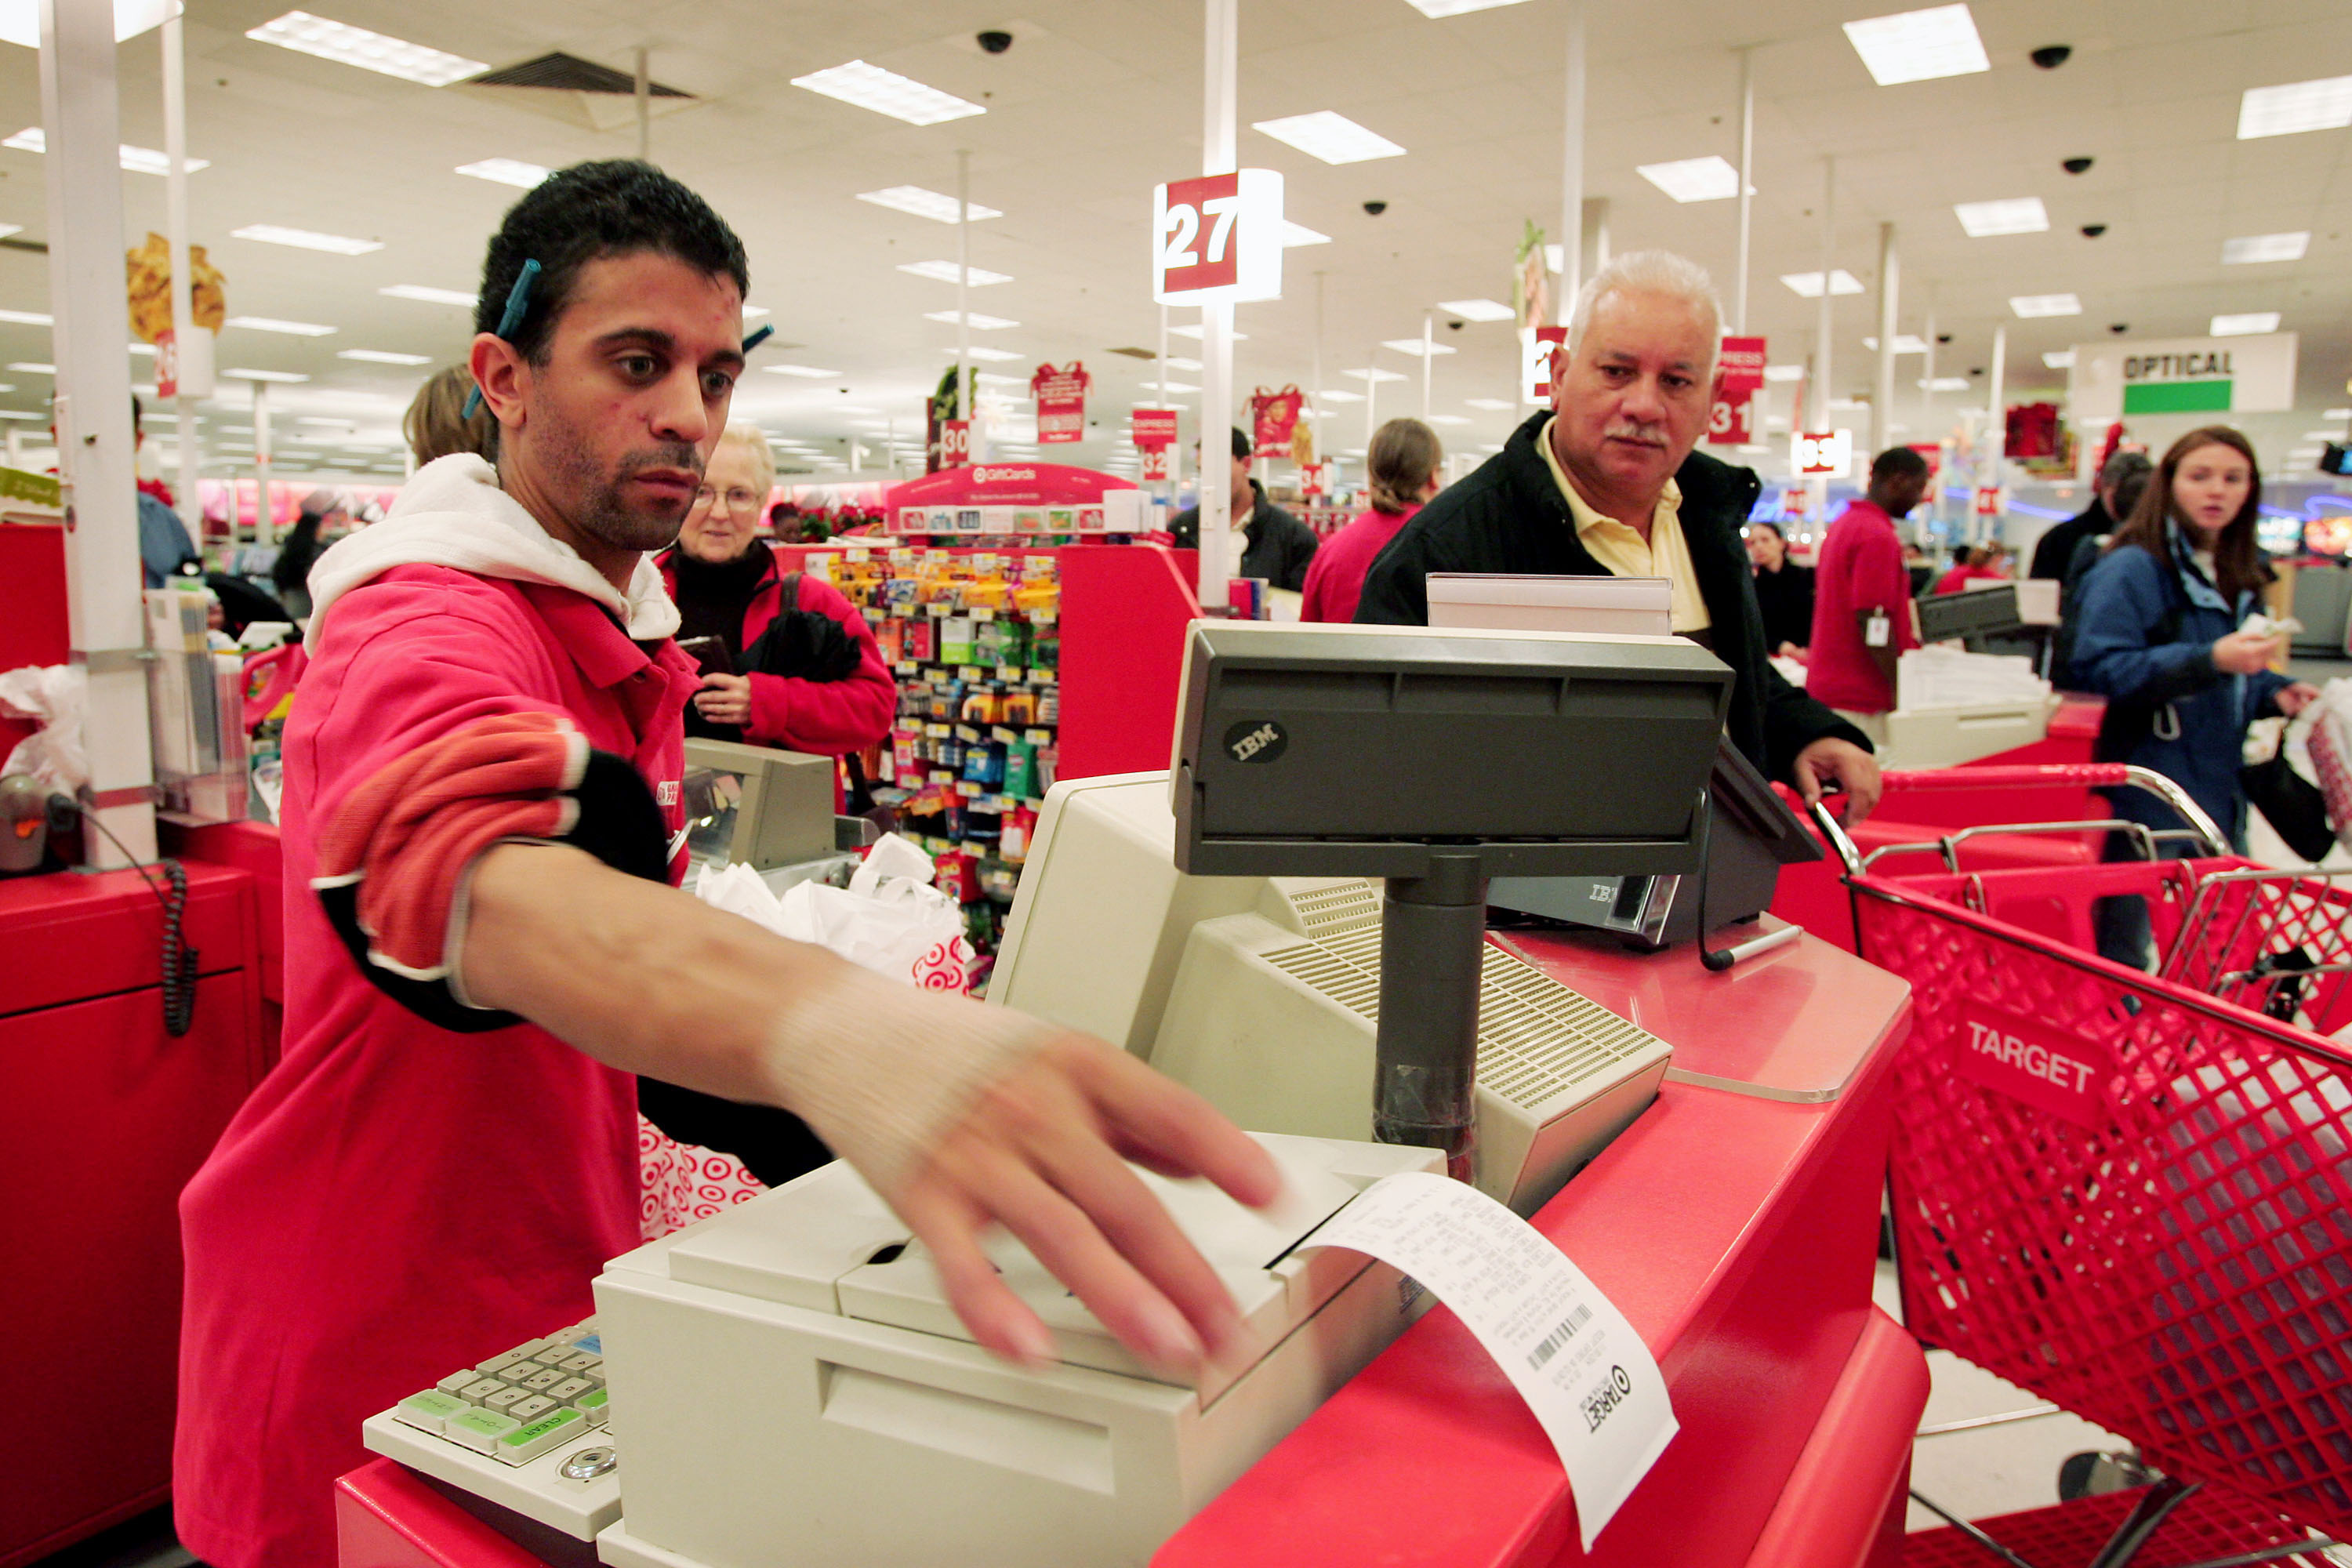 A clerk rings up sales for a customer at a Target store November 30, 2004 in Chicago, Illinois.